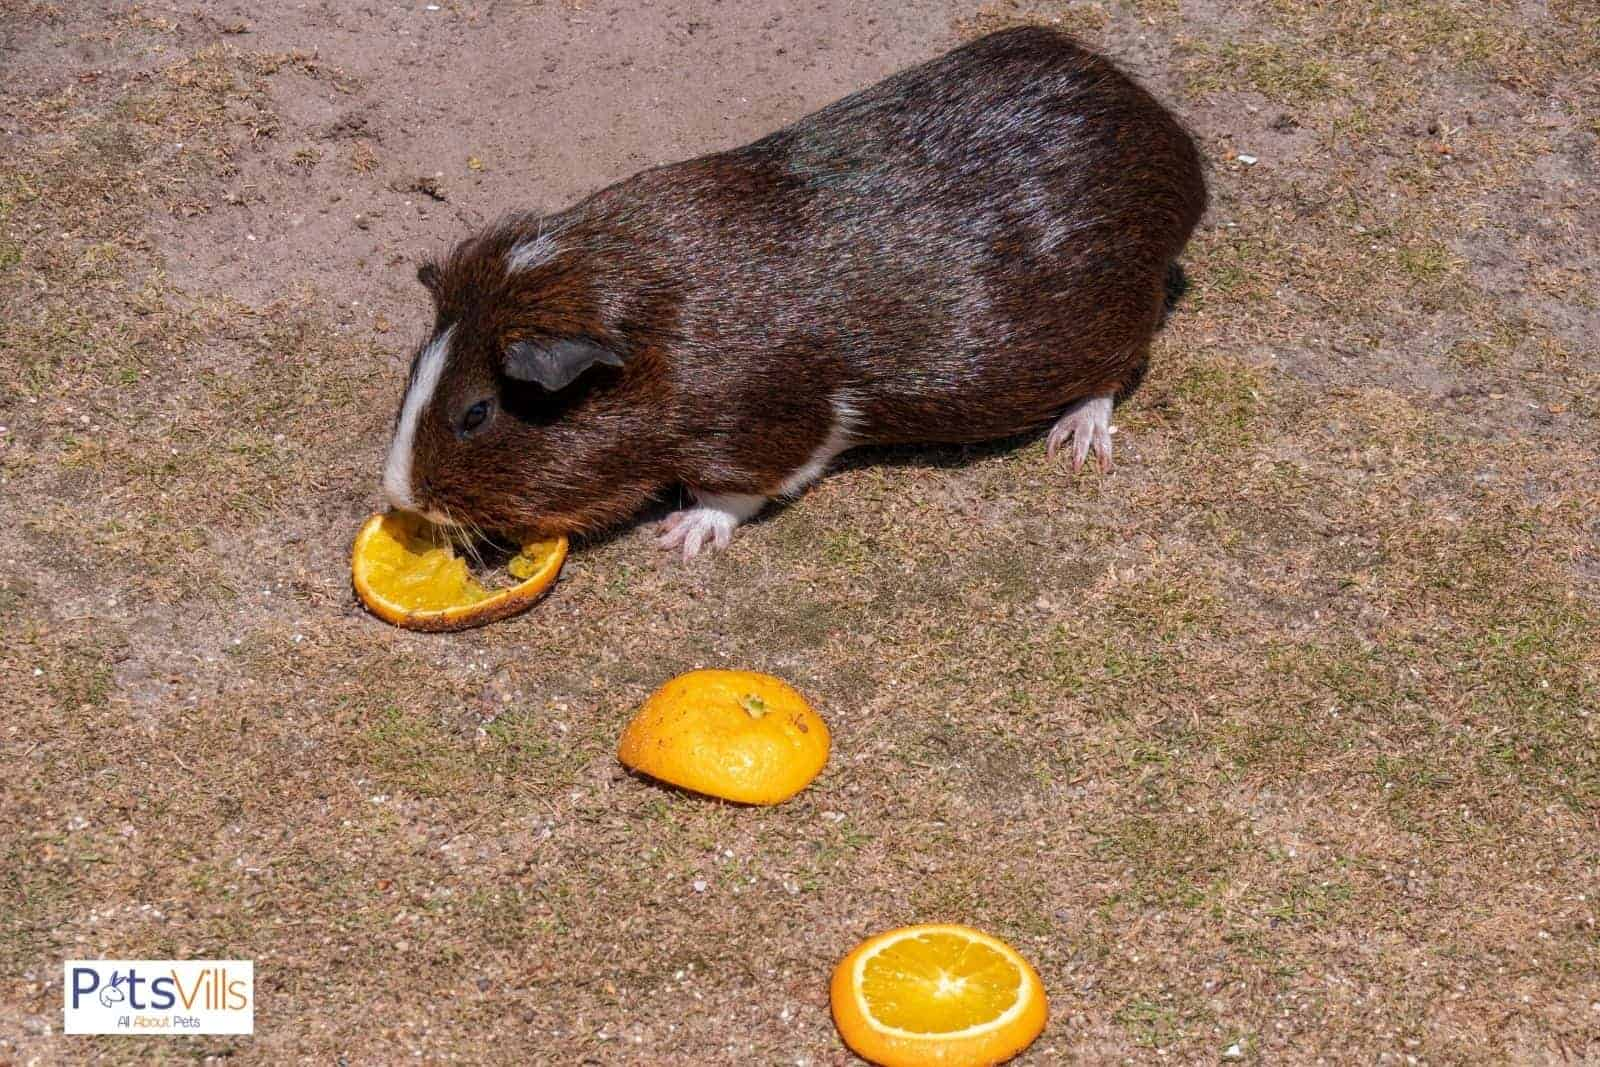 brown guinea pig eating orange but can guinea pigs eat oranges safely?